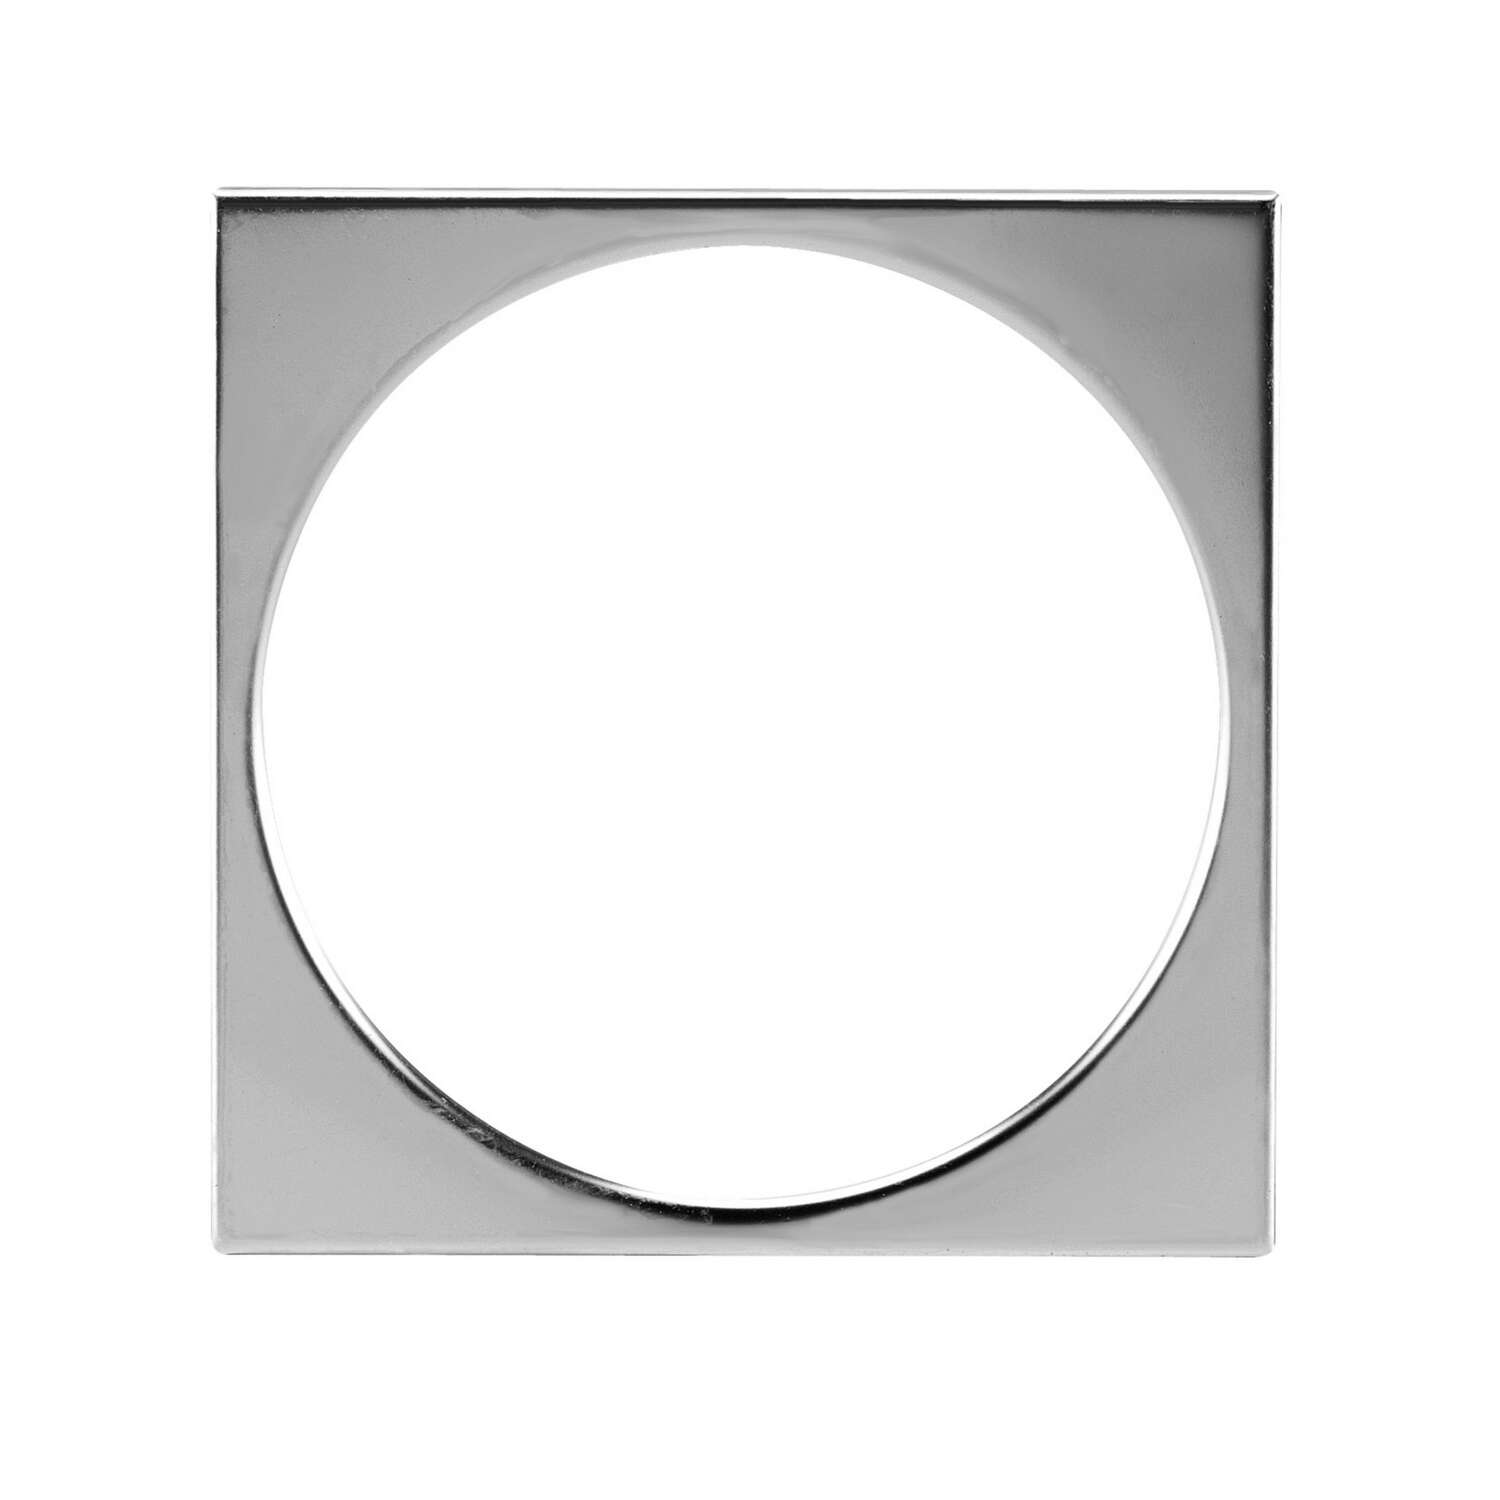 Oatey  3-1/4 in. Dia. Stainless Steel  Square Tile Ring